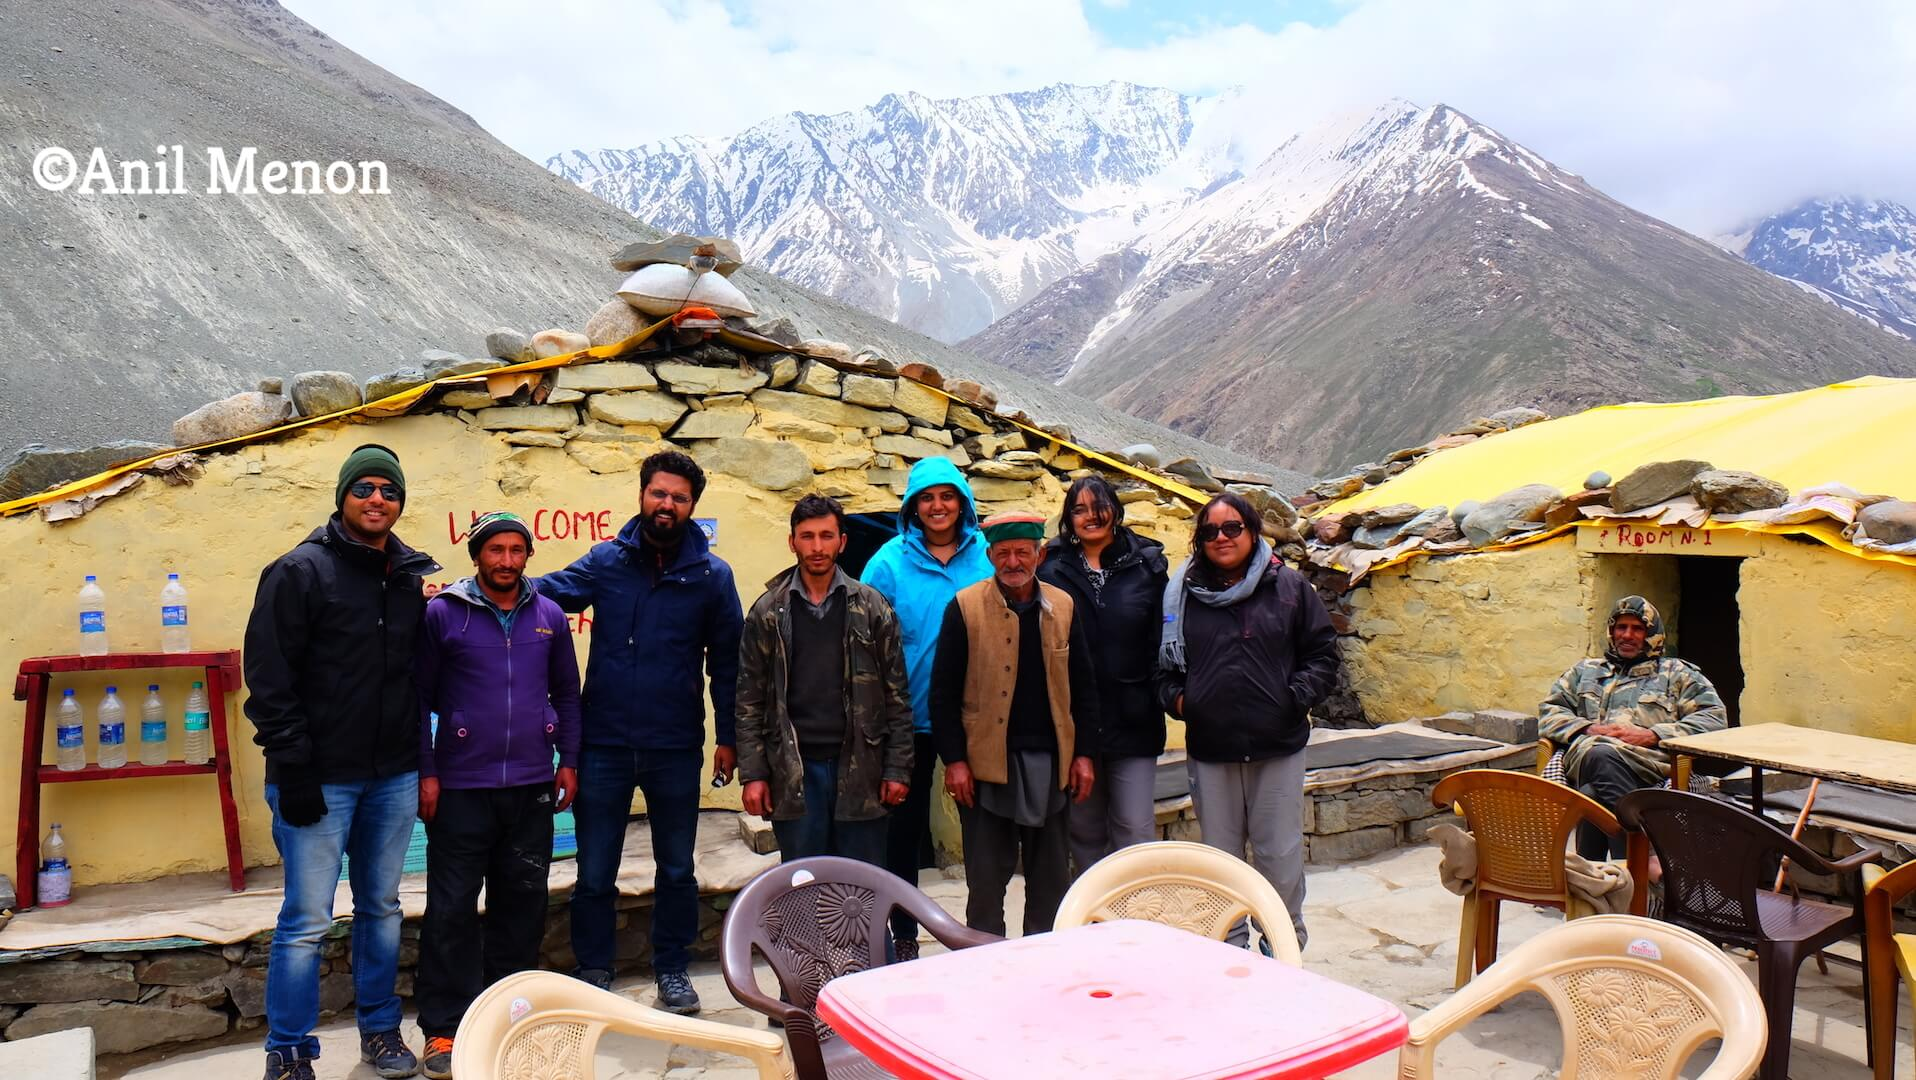 A photo of us with the owner of the rest stop and his helpers outside our huts in Himalayas